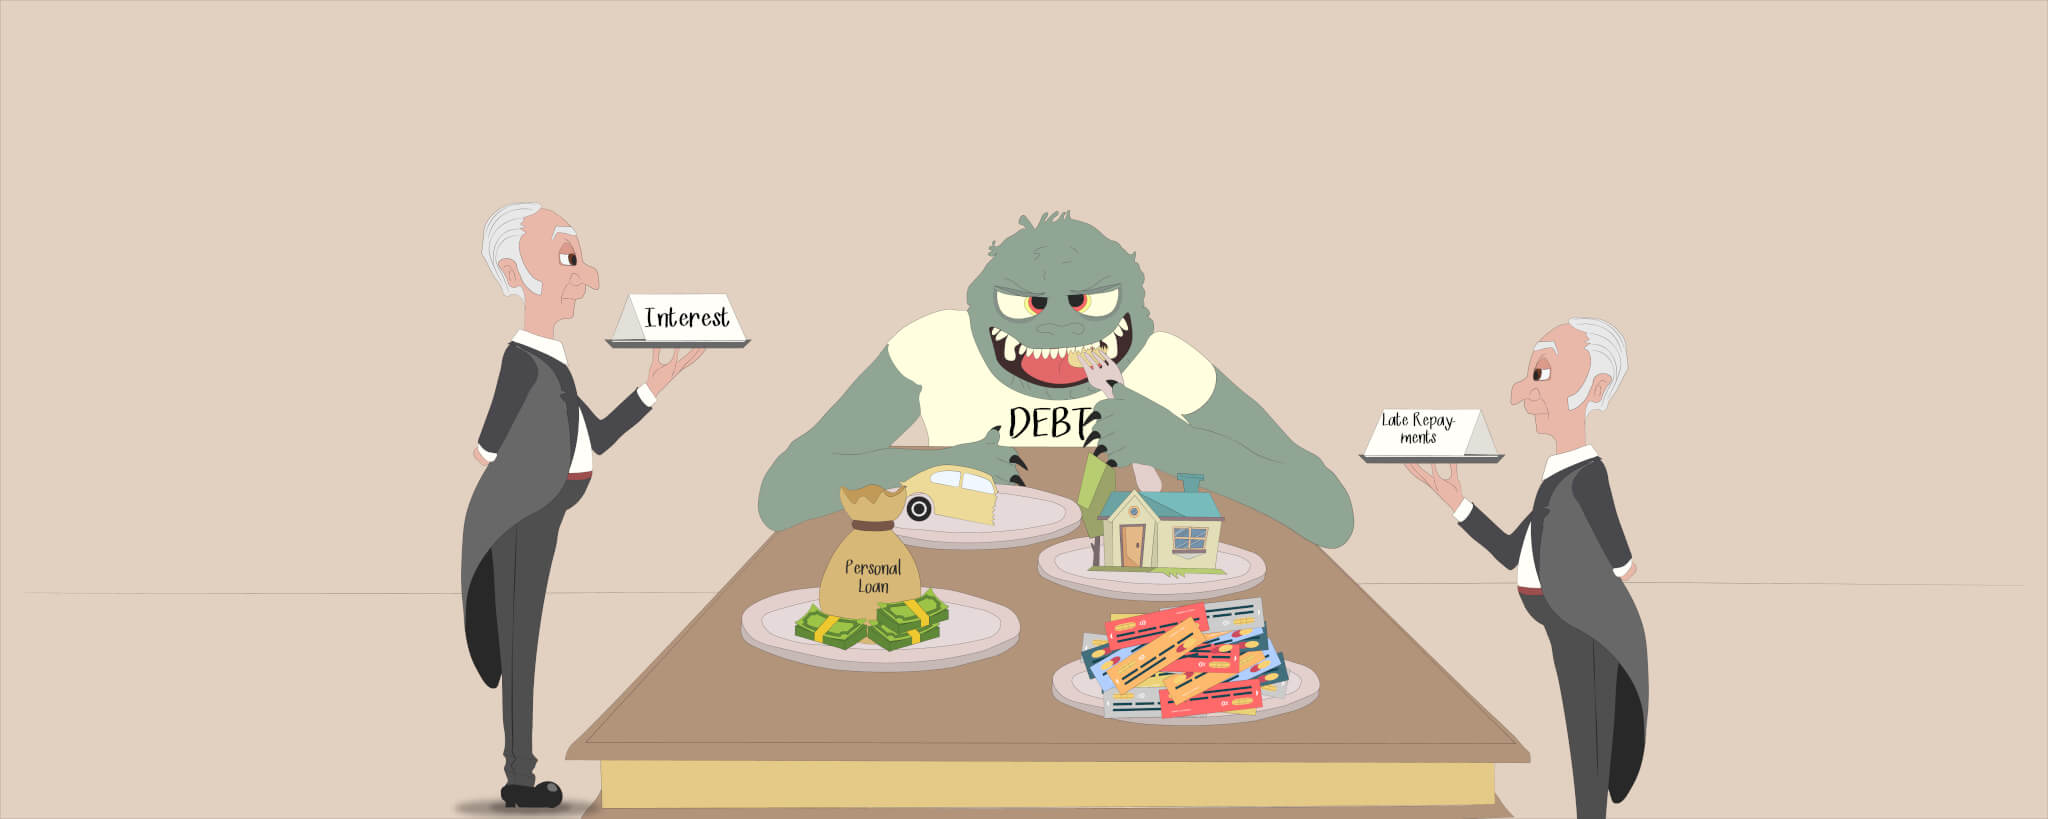 Don't Feed the Debt Monster